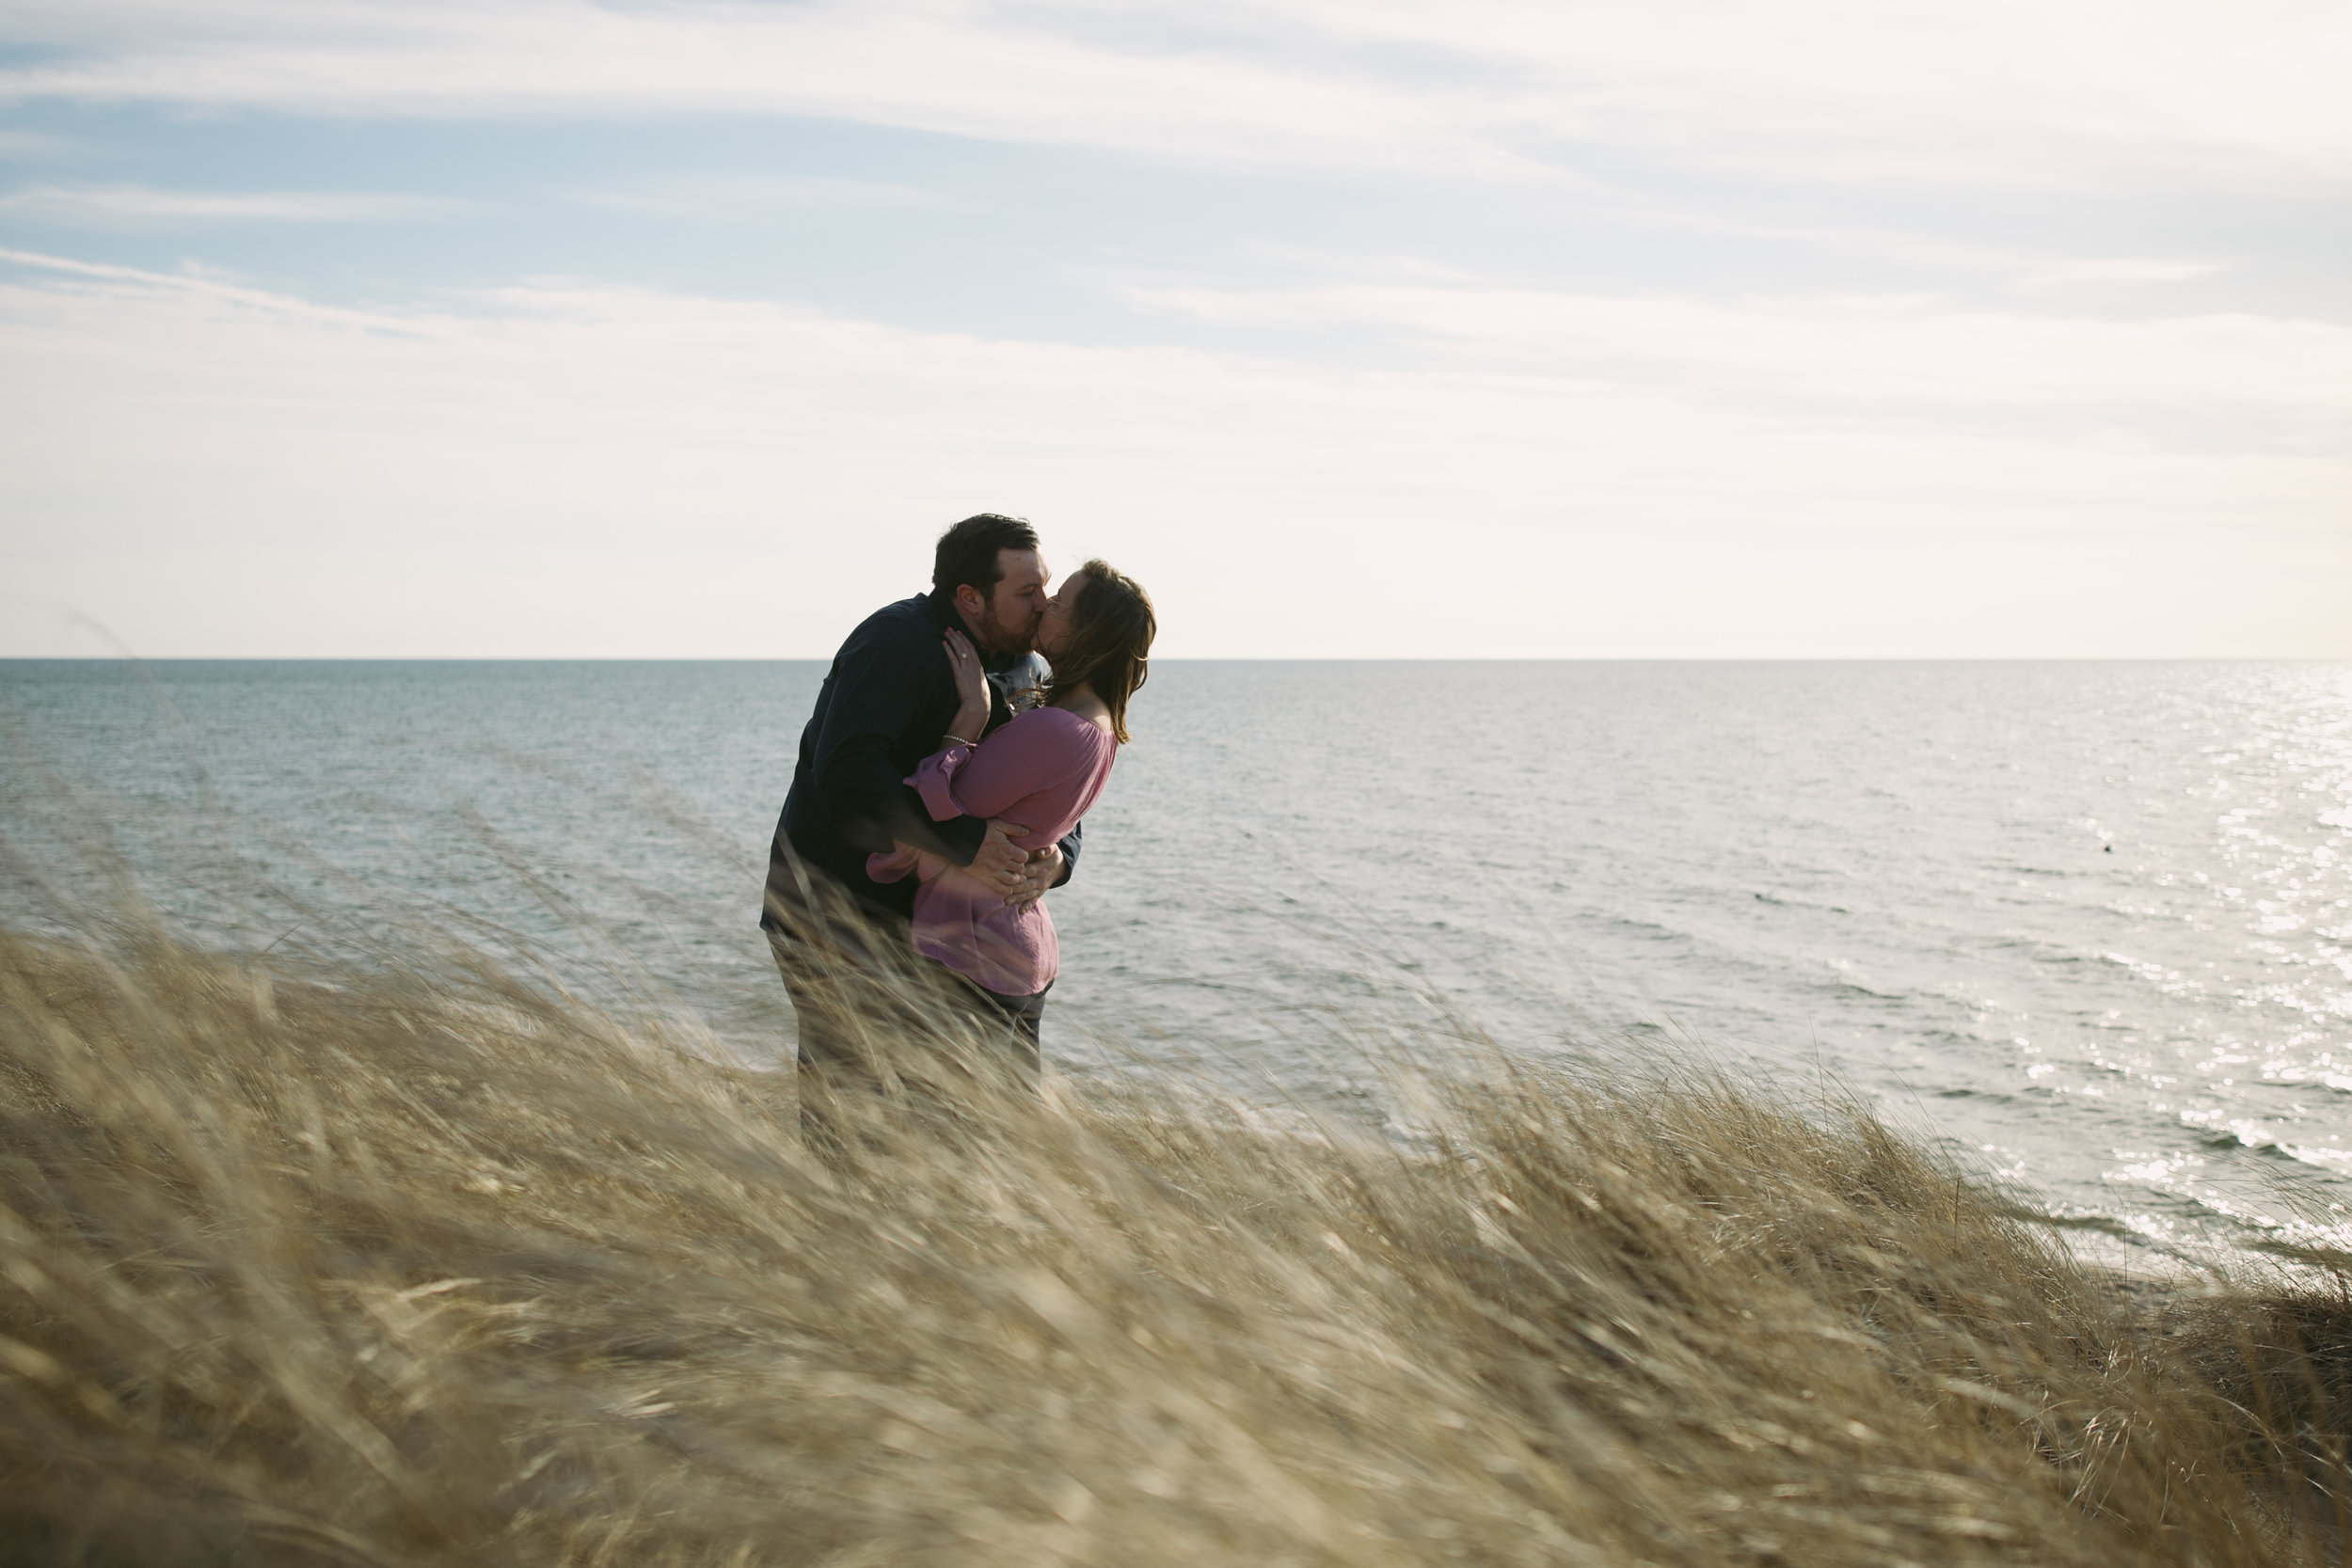 grandrapidsphotographer_hollandmichigan_hollandphotographer_lakemichigan_beachwedding_grandrapids_engaged_jessicadarling_jdarlingphoto_beachengagement008.jpg